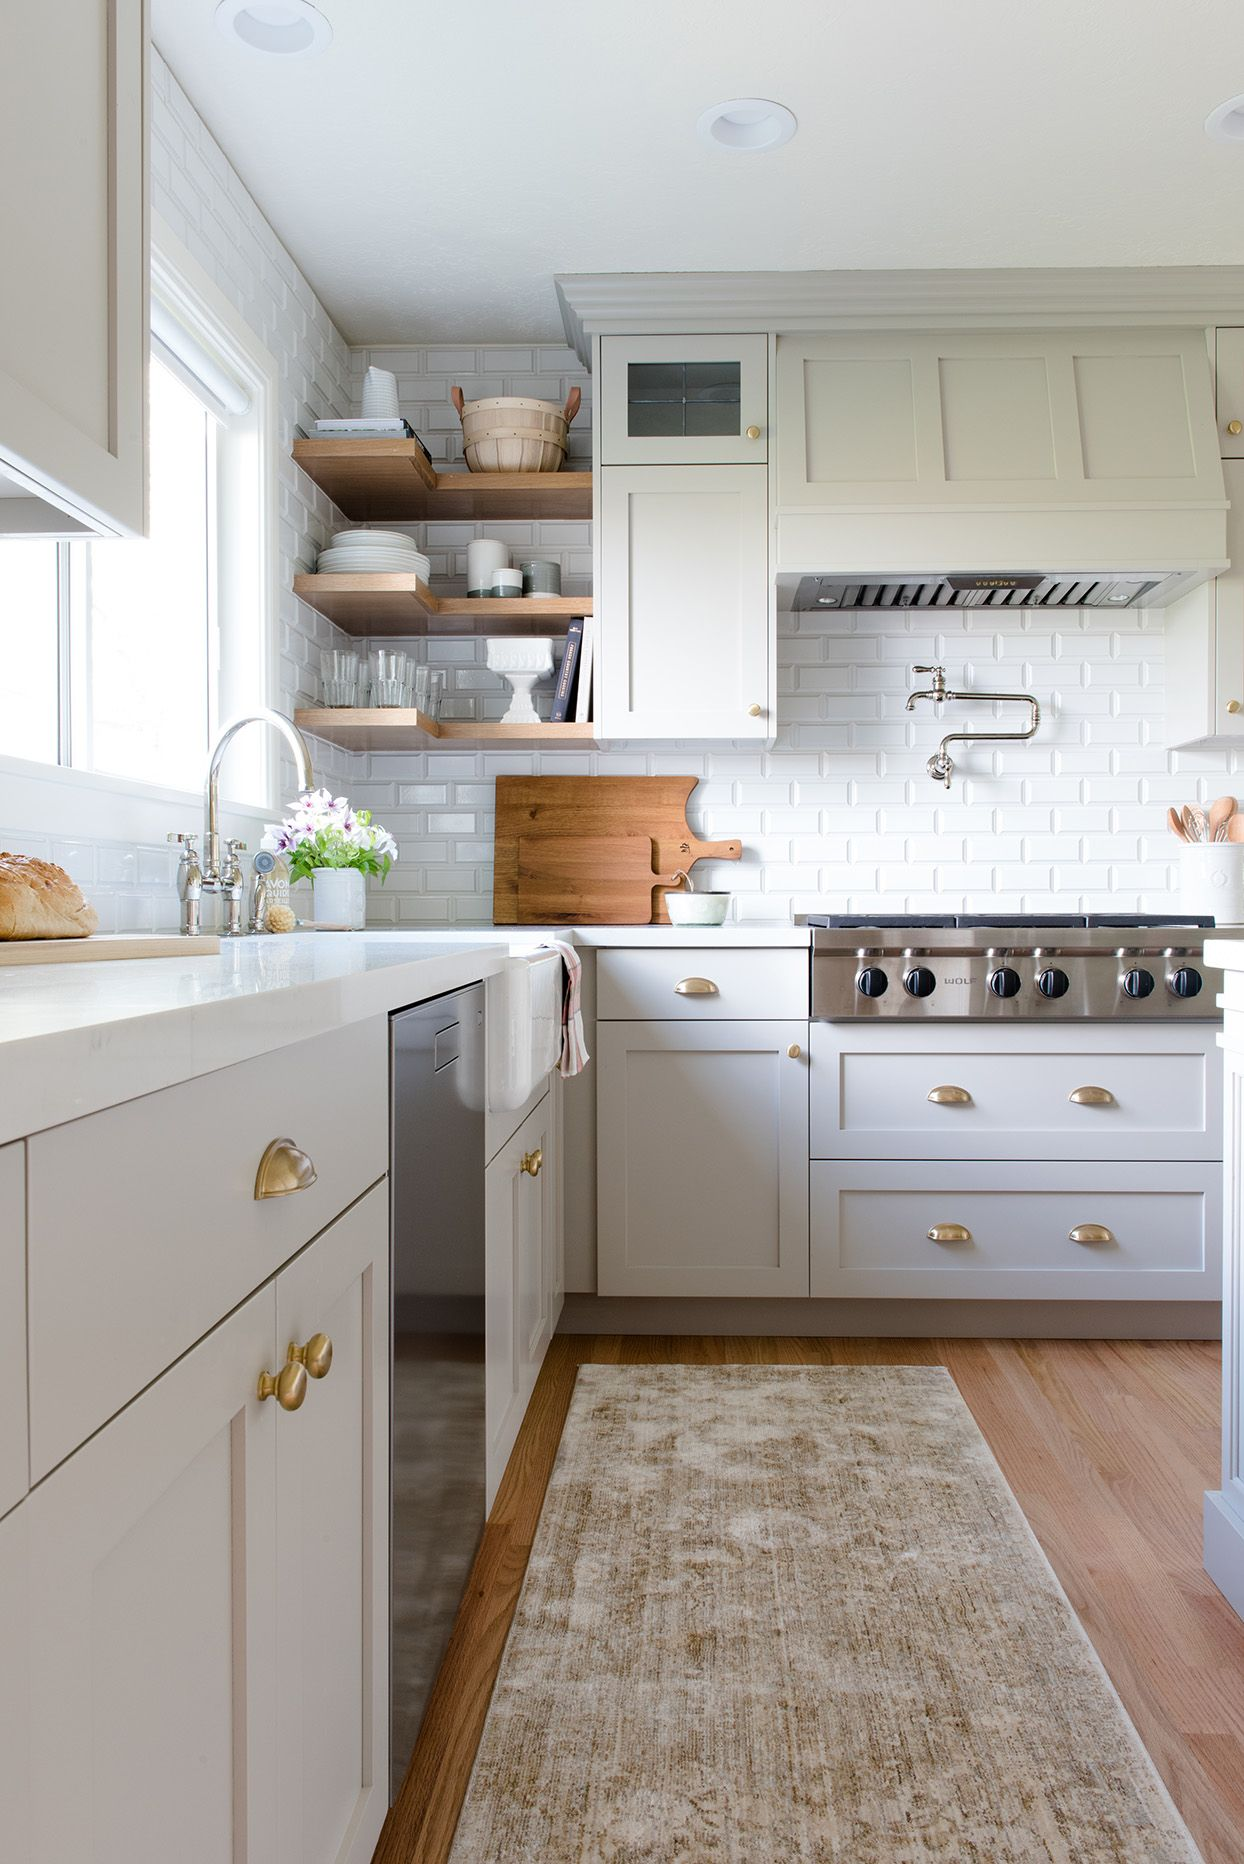 Goodbye Gray Hello Earth Tones Our 2020 Paint Color Forecast